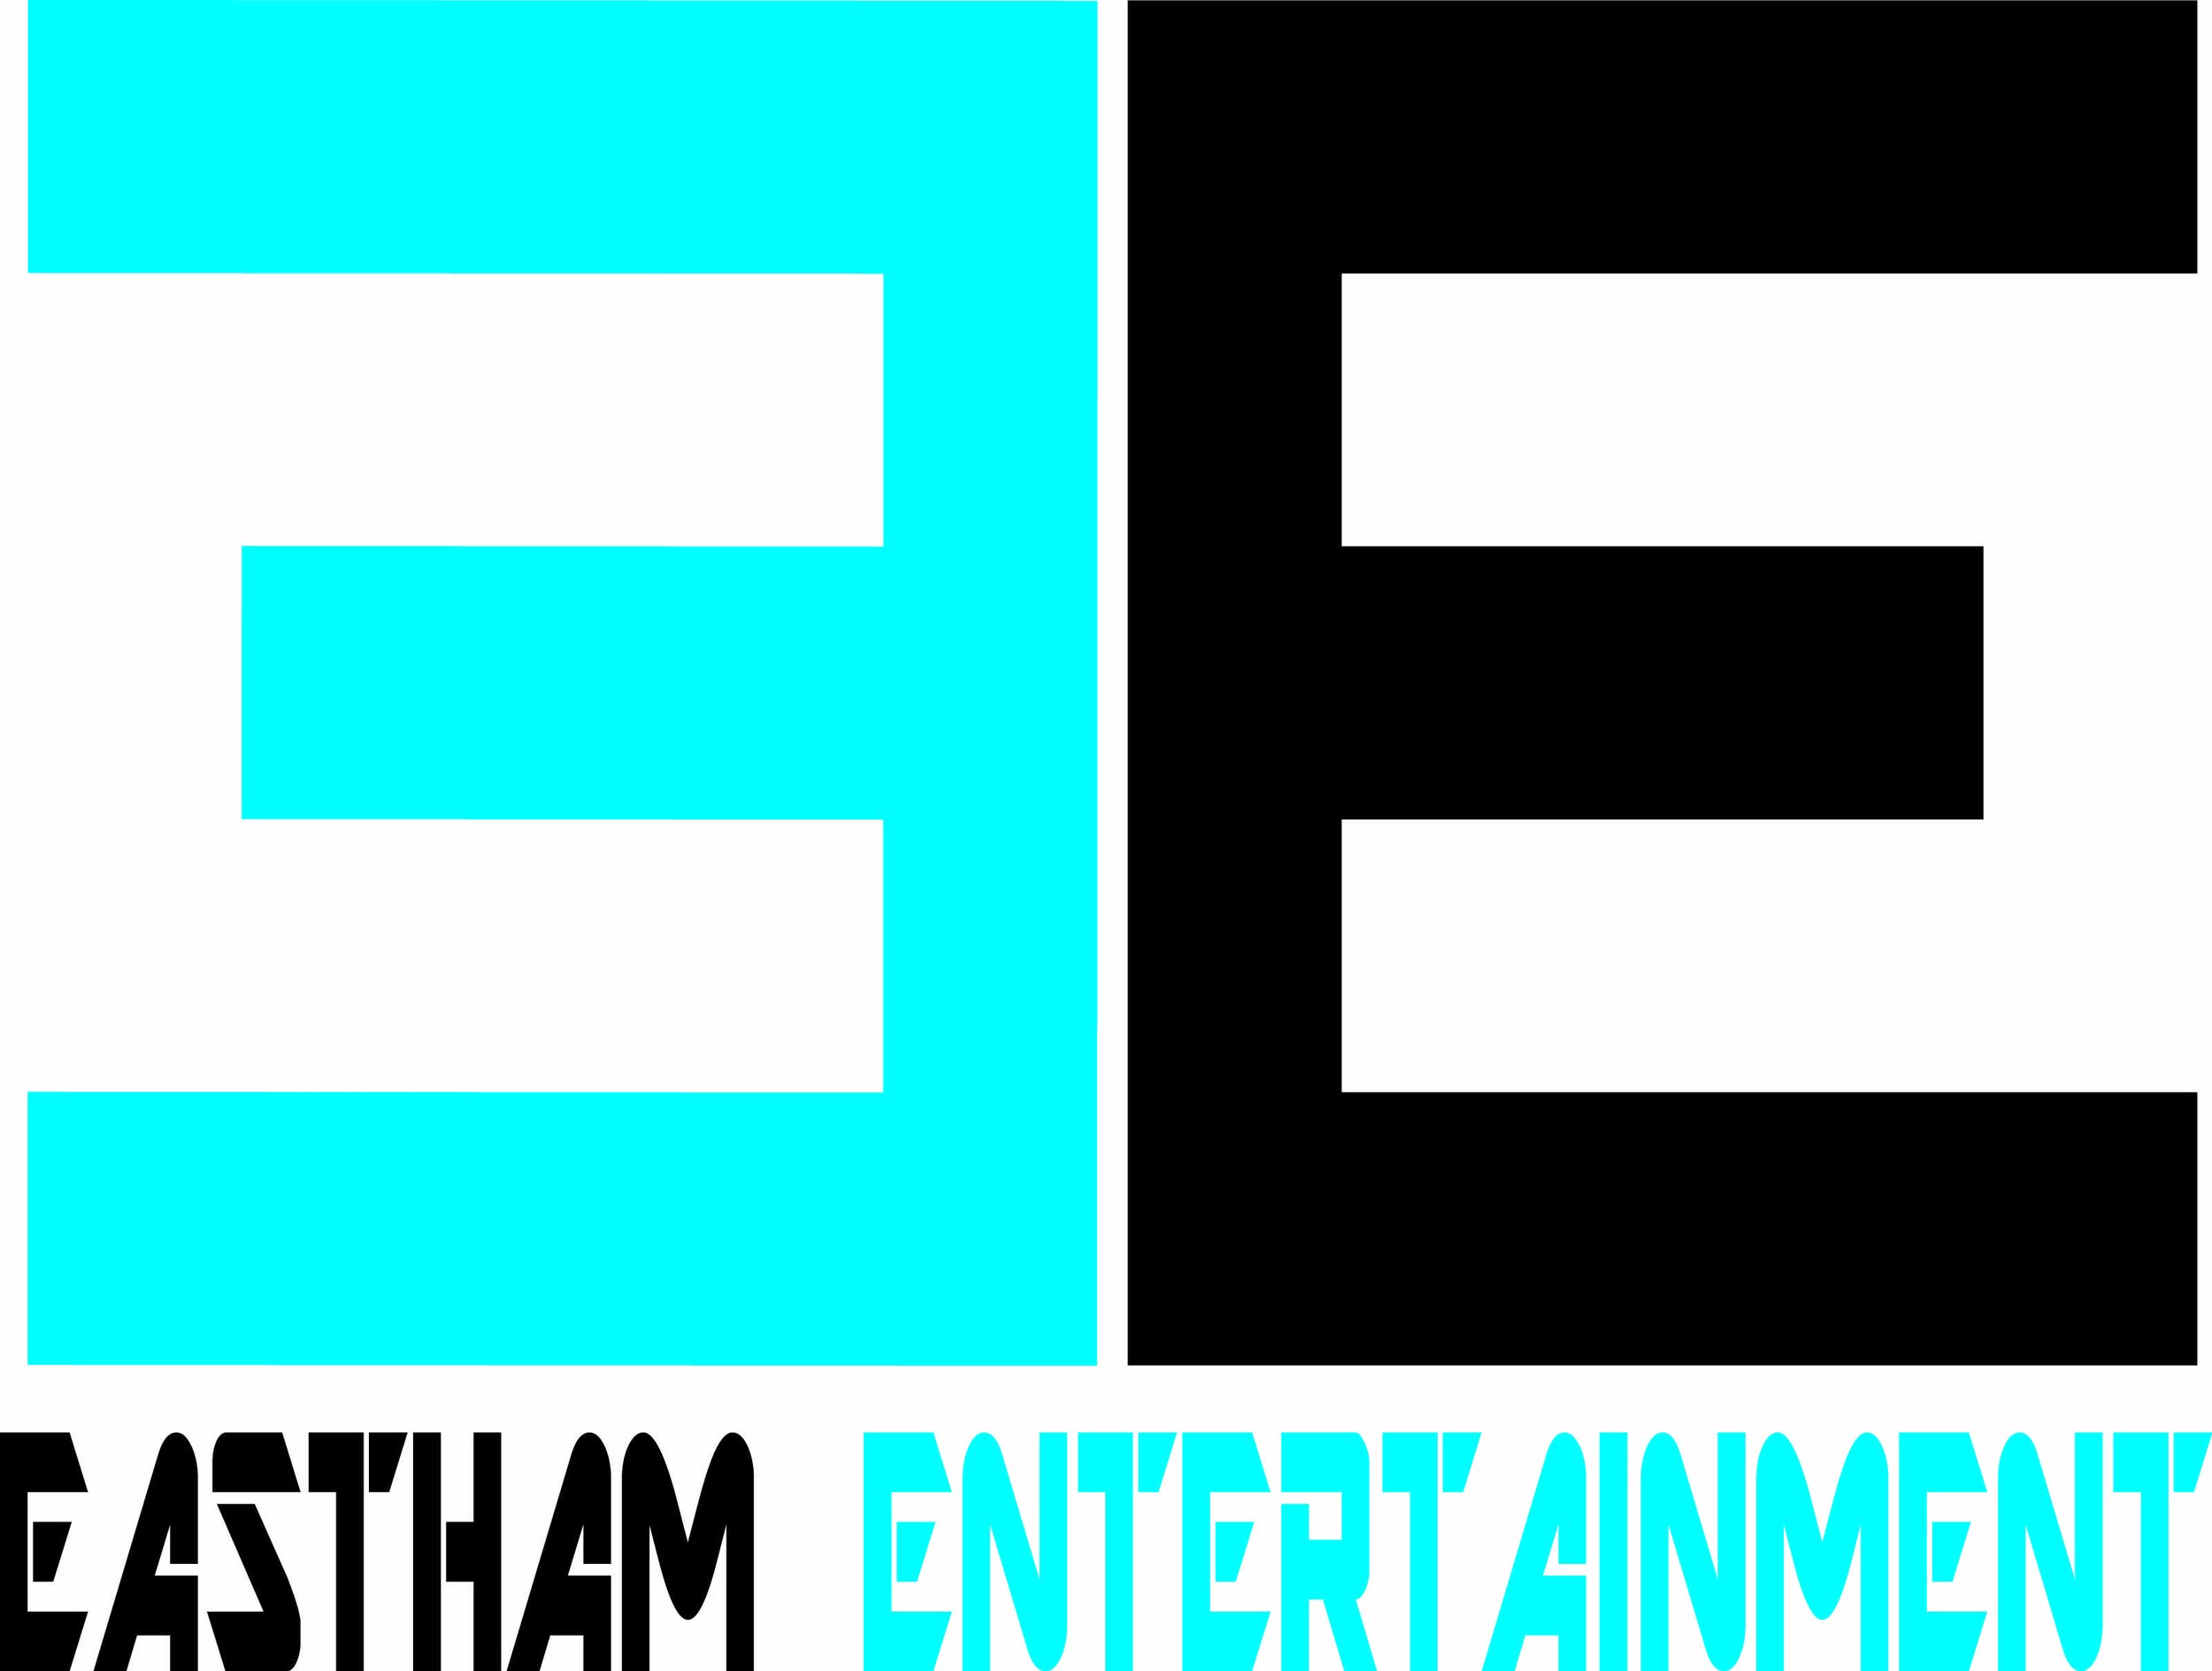 EasthamEntertainment.jpg